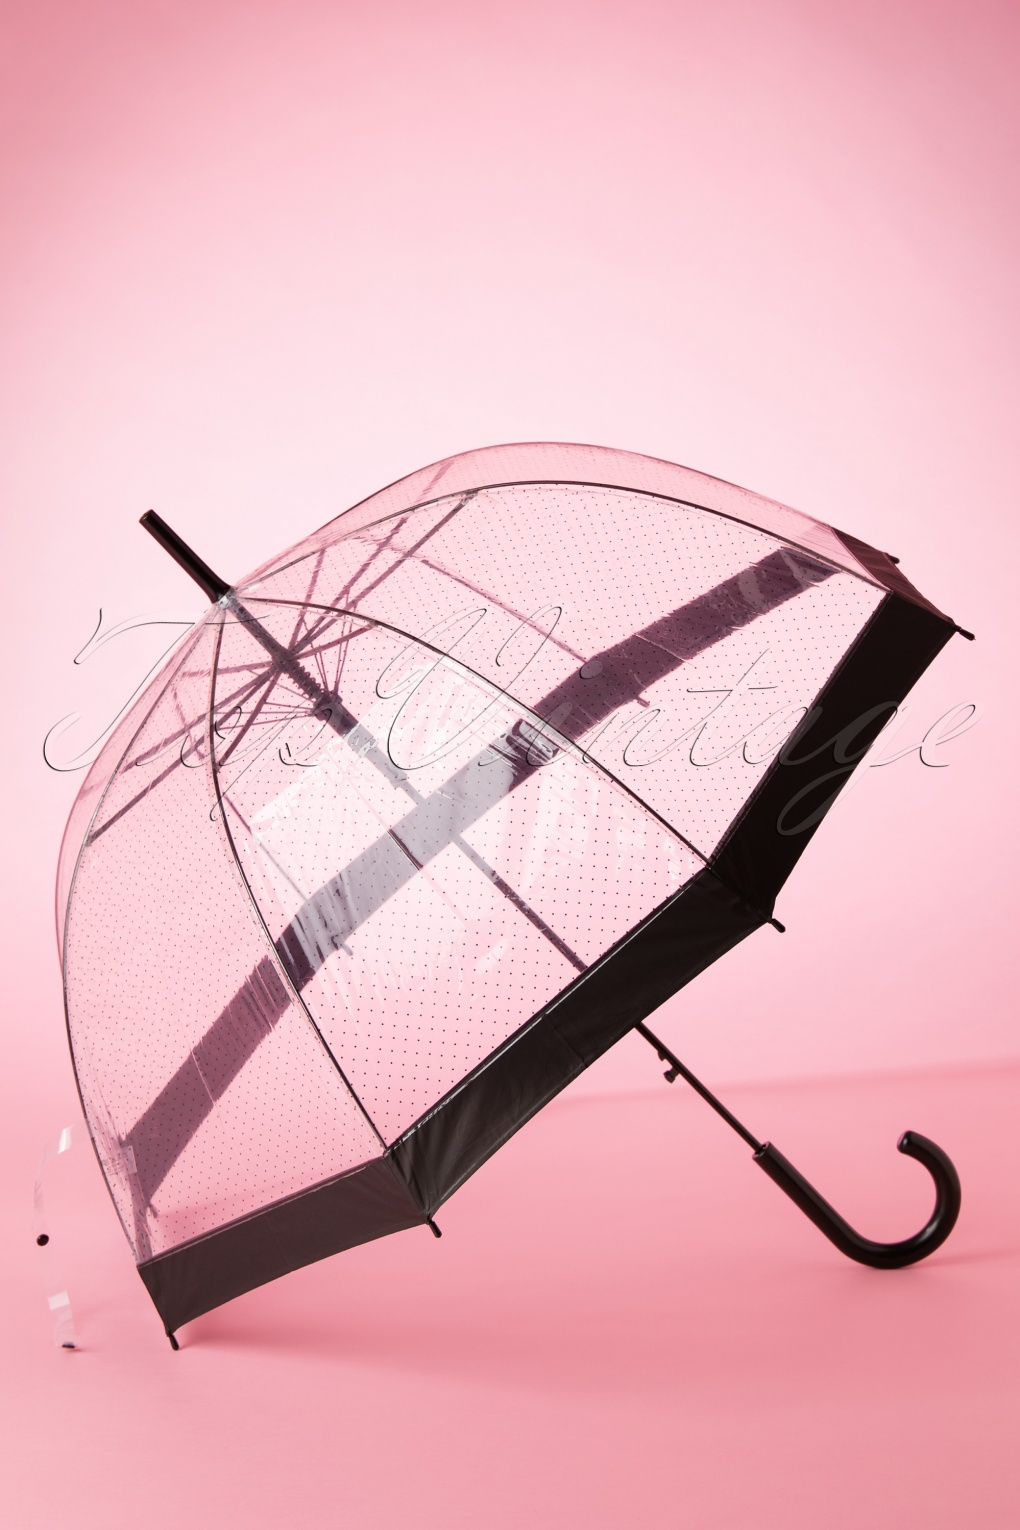 Vintage Style Parasols and Umbrellas 60s Lady Dot Transparent Dome Umbrella in Black £15.59 AT vintagedancer.com